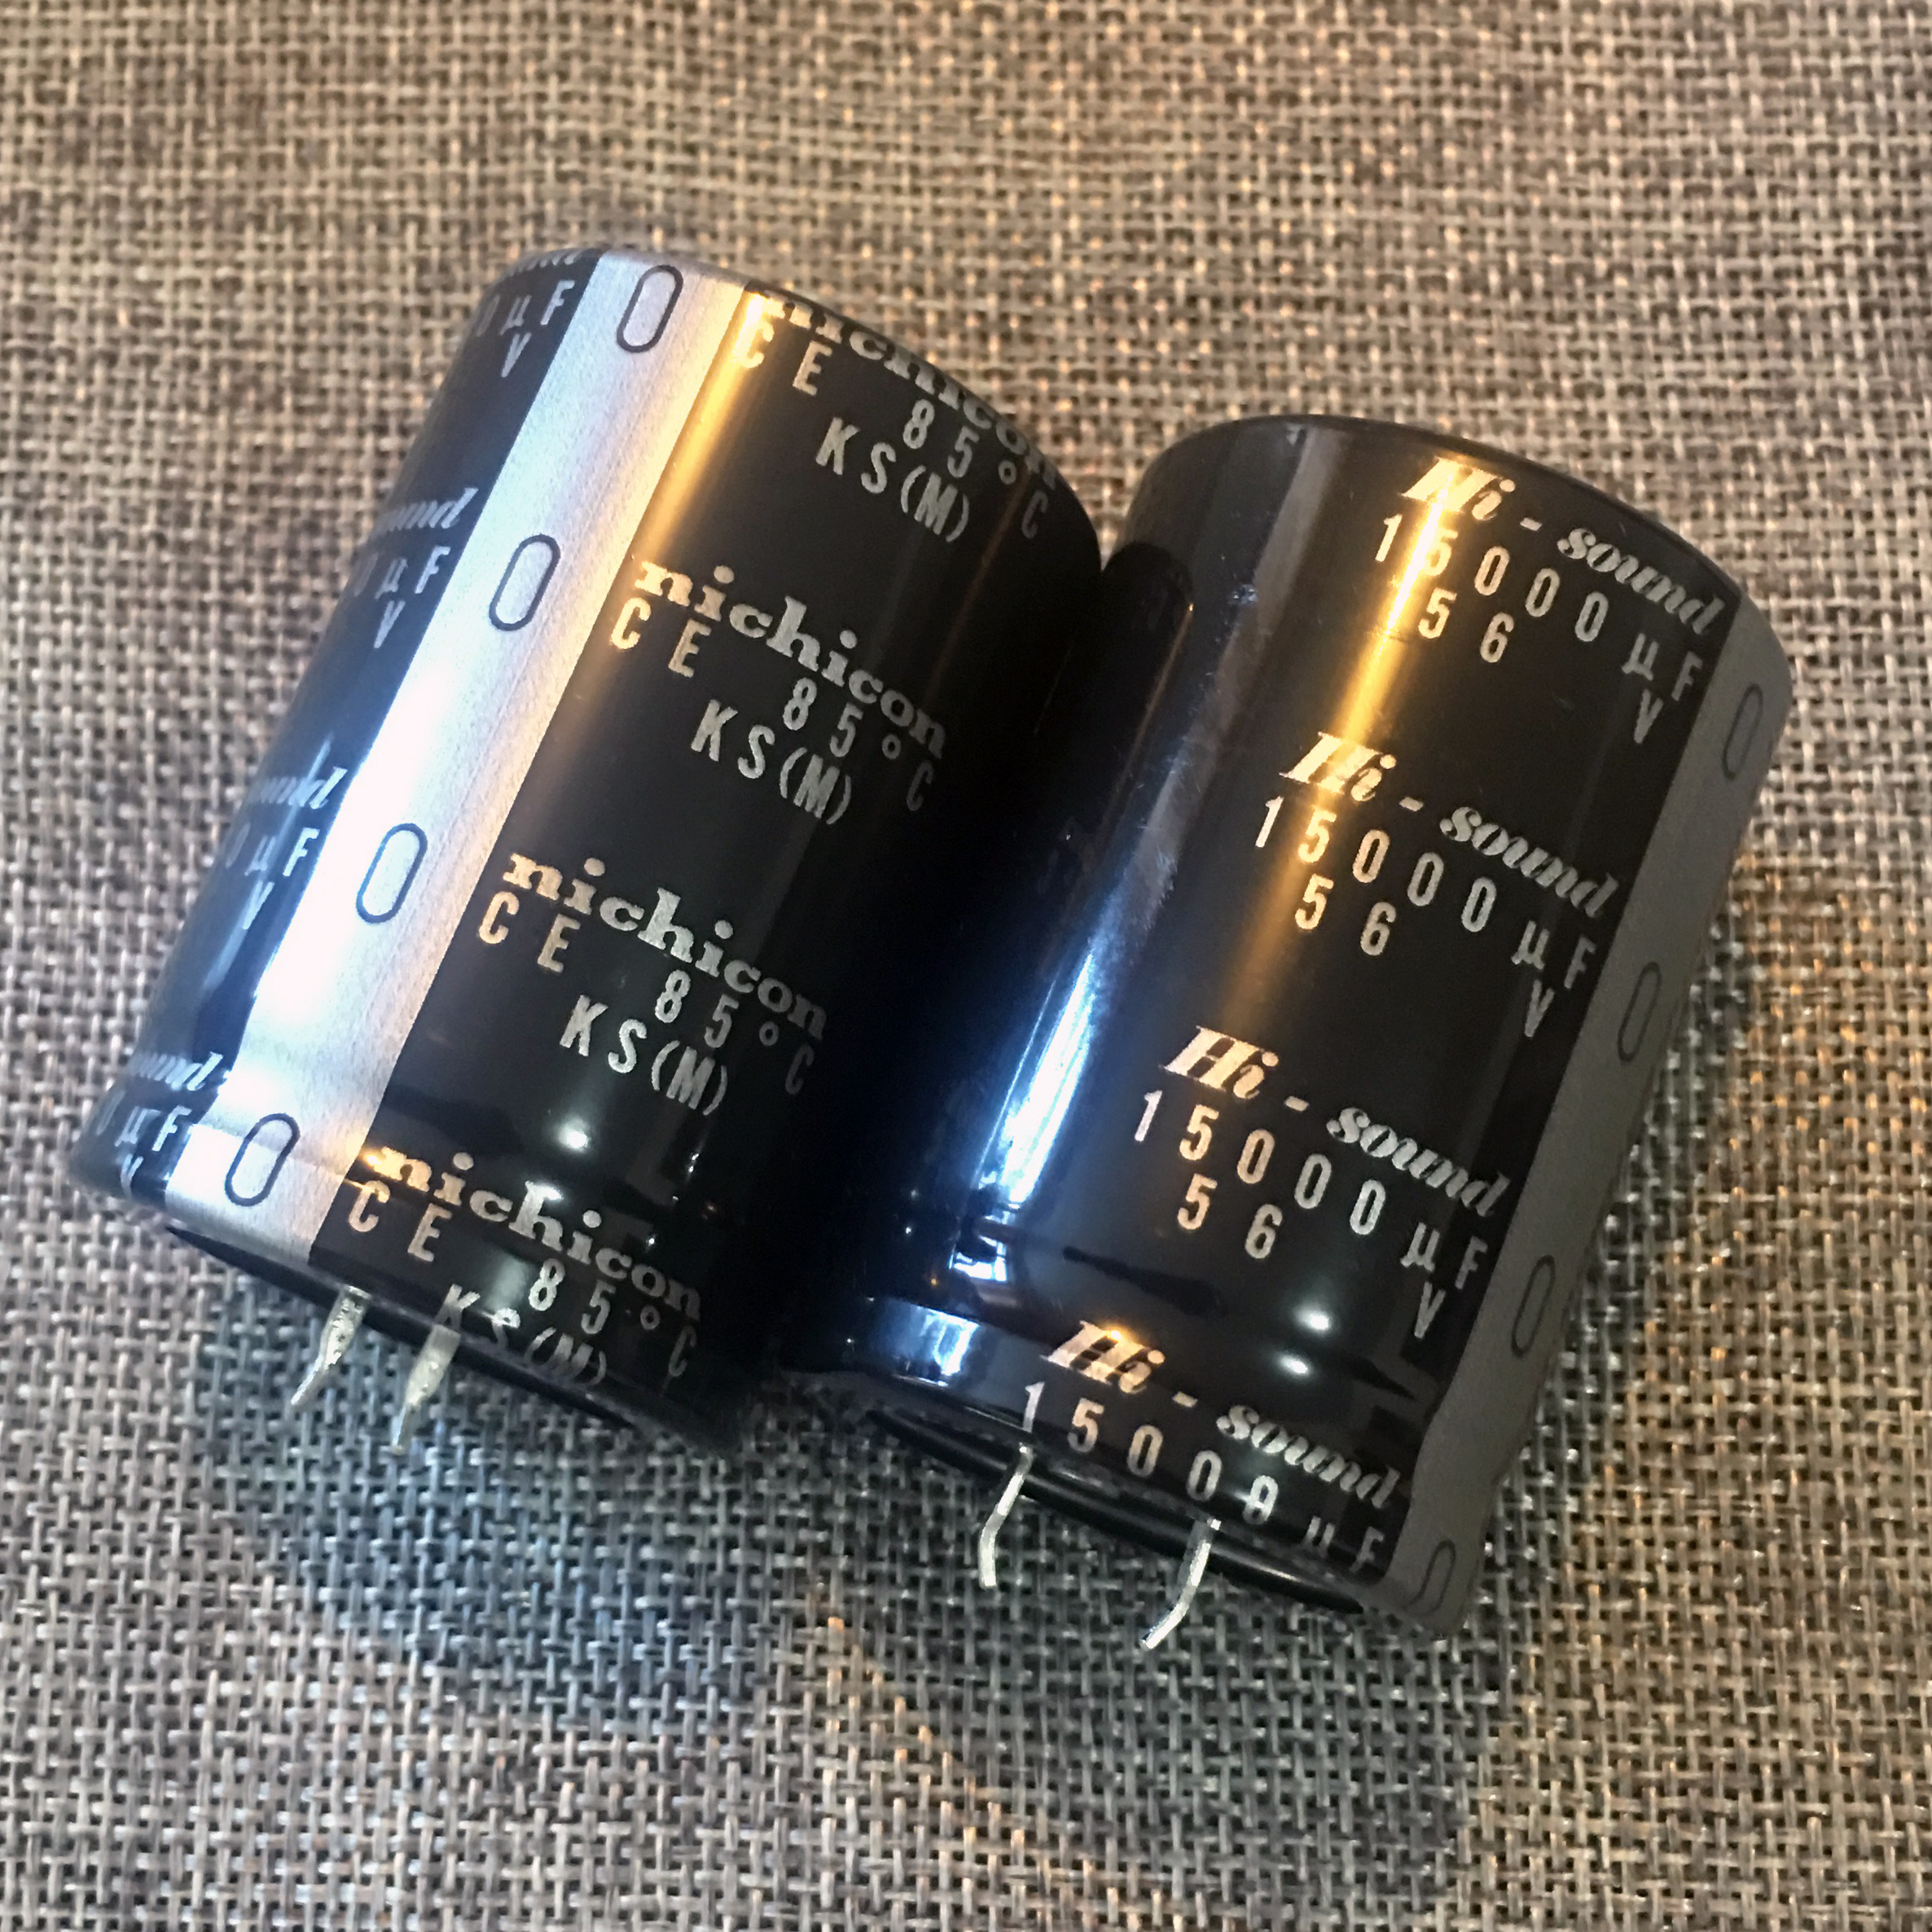 2PCS NEW NICHICON HI-SOUND KS 56V15000UF 35X50MM Amplifier Filtering 15000uF 56V Audio Capacitor 15000uF/56V Hi-Sound